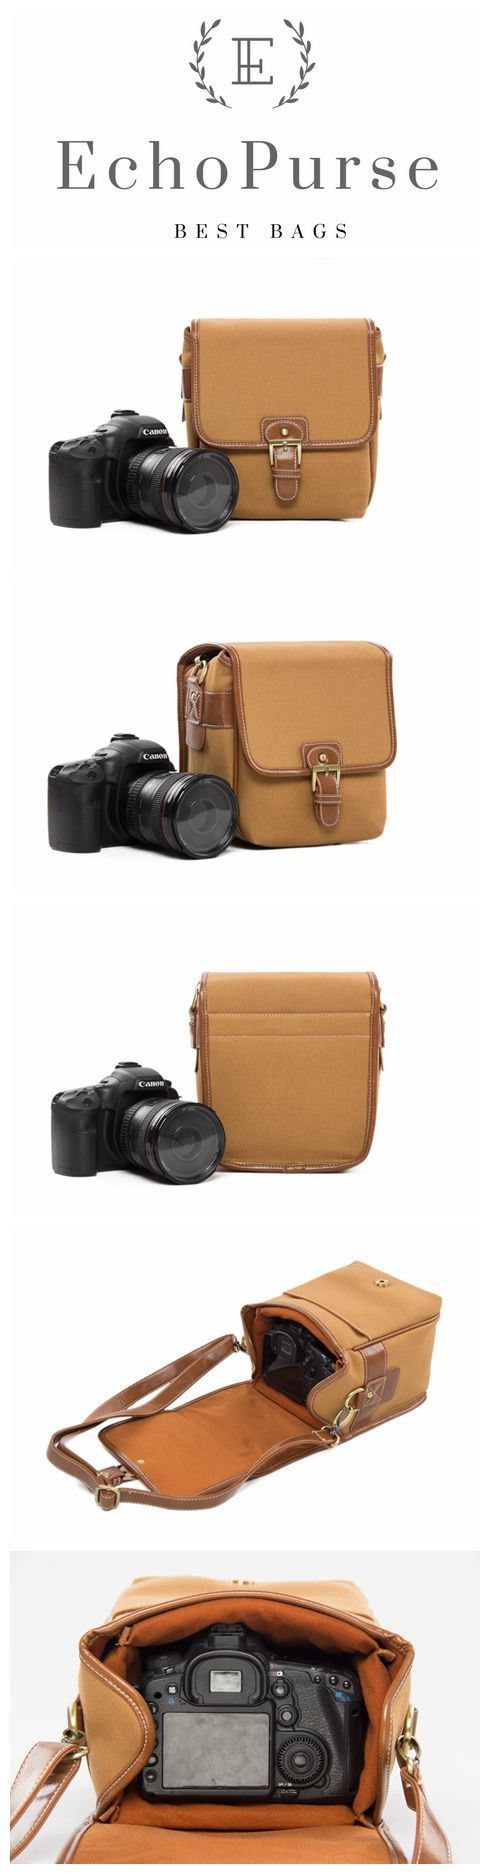 Handmade Leather DSLR Camera Pouch, SLR Camera Purse 1356S #camerapurse